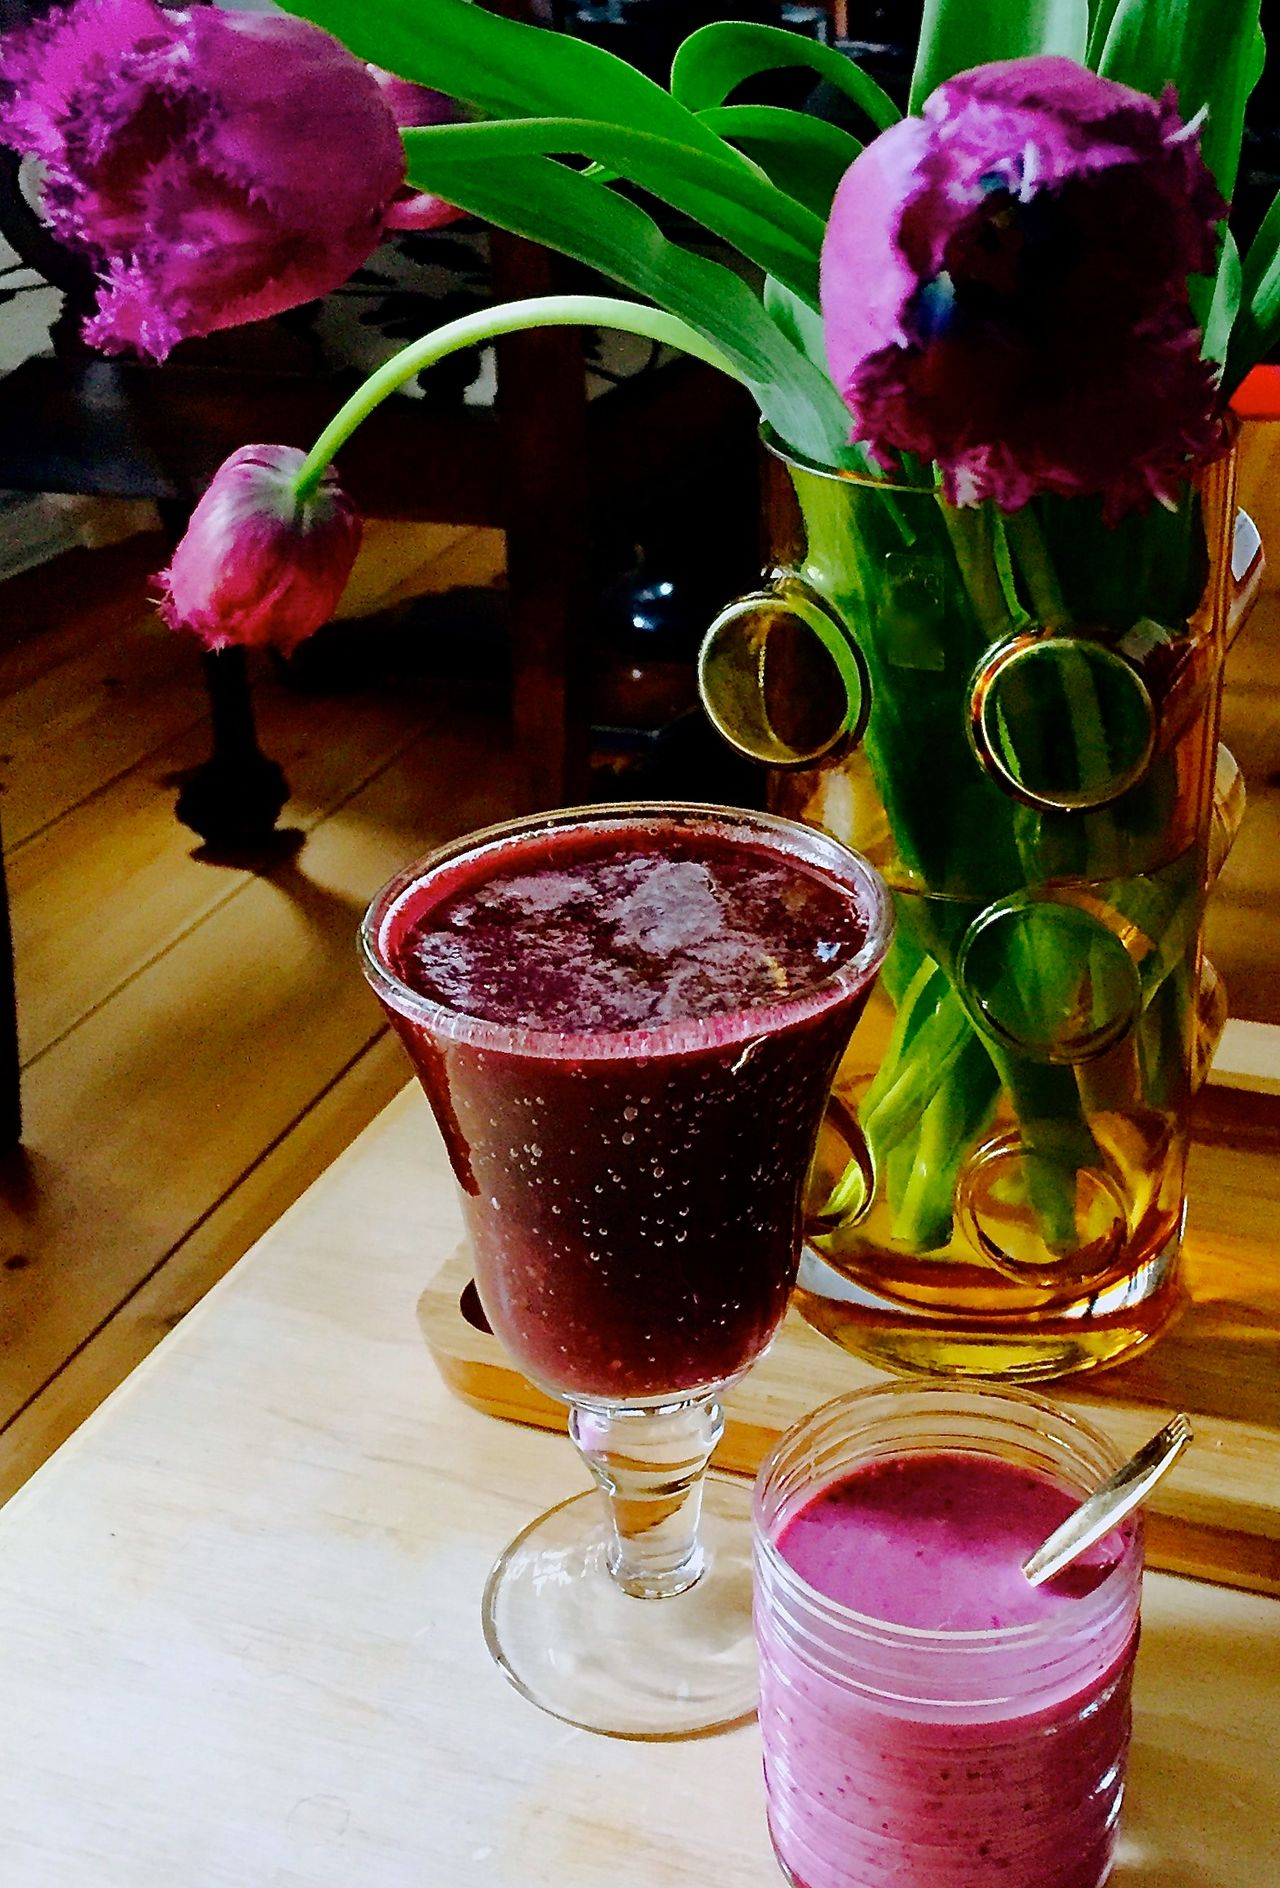 Breakfast Close-up Day Delicious Drink Drinking Glass Flower Food And Drink Freshly Made Freshness Healthy Eating Indoors  No People Organic Food Organic Juices..... Organic Lifestyle Organic Living Purple Color Purple Flower Purple Rain Ready-to-eat Refreshment Smoothies Tulips Vase